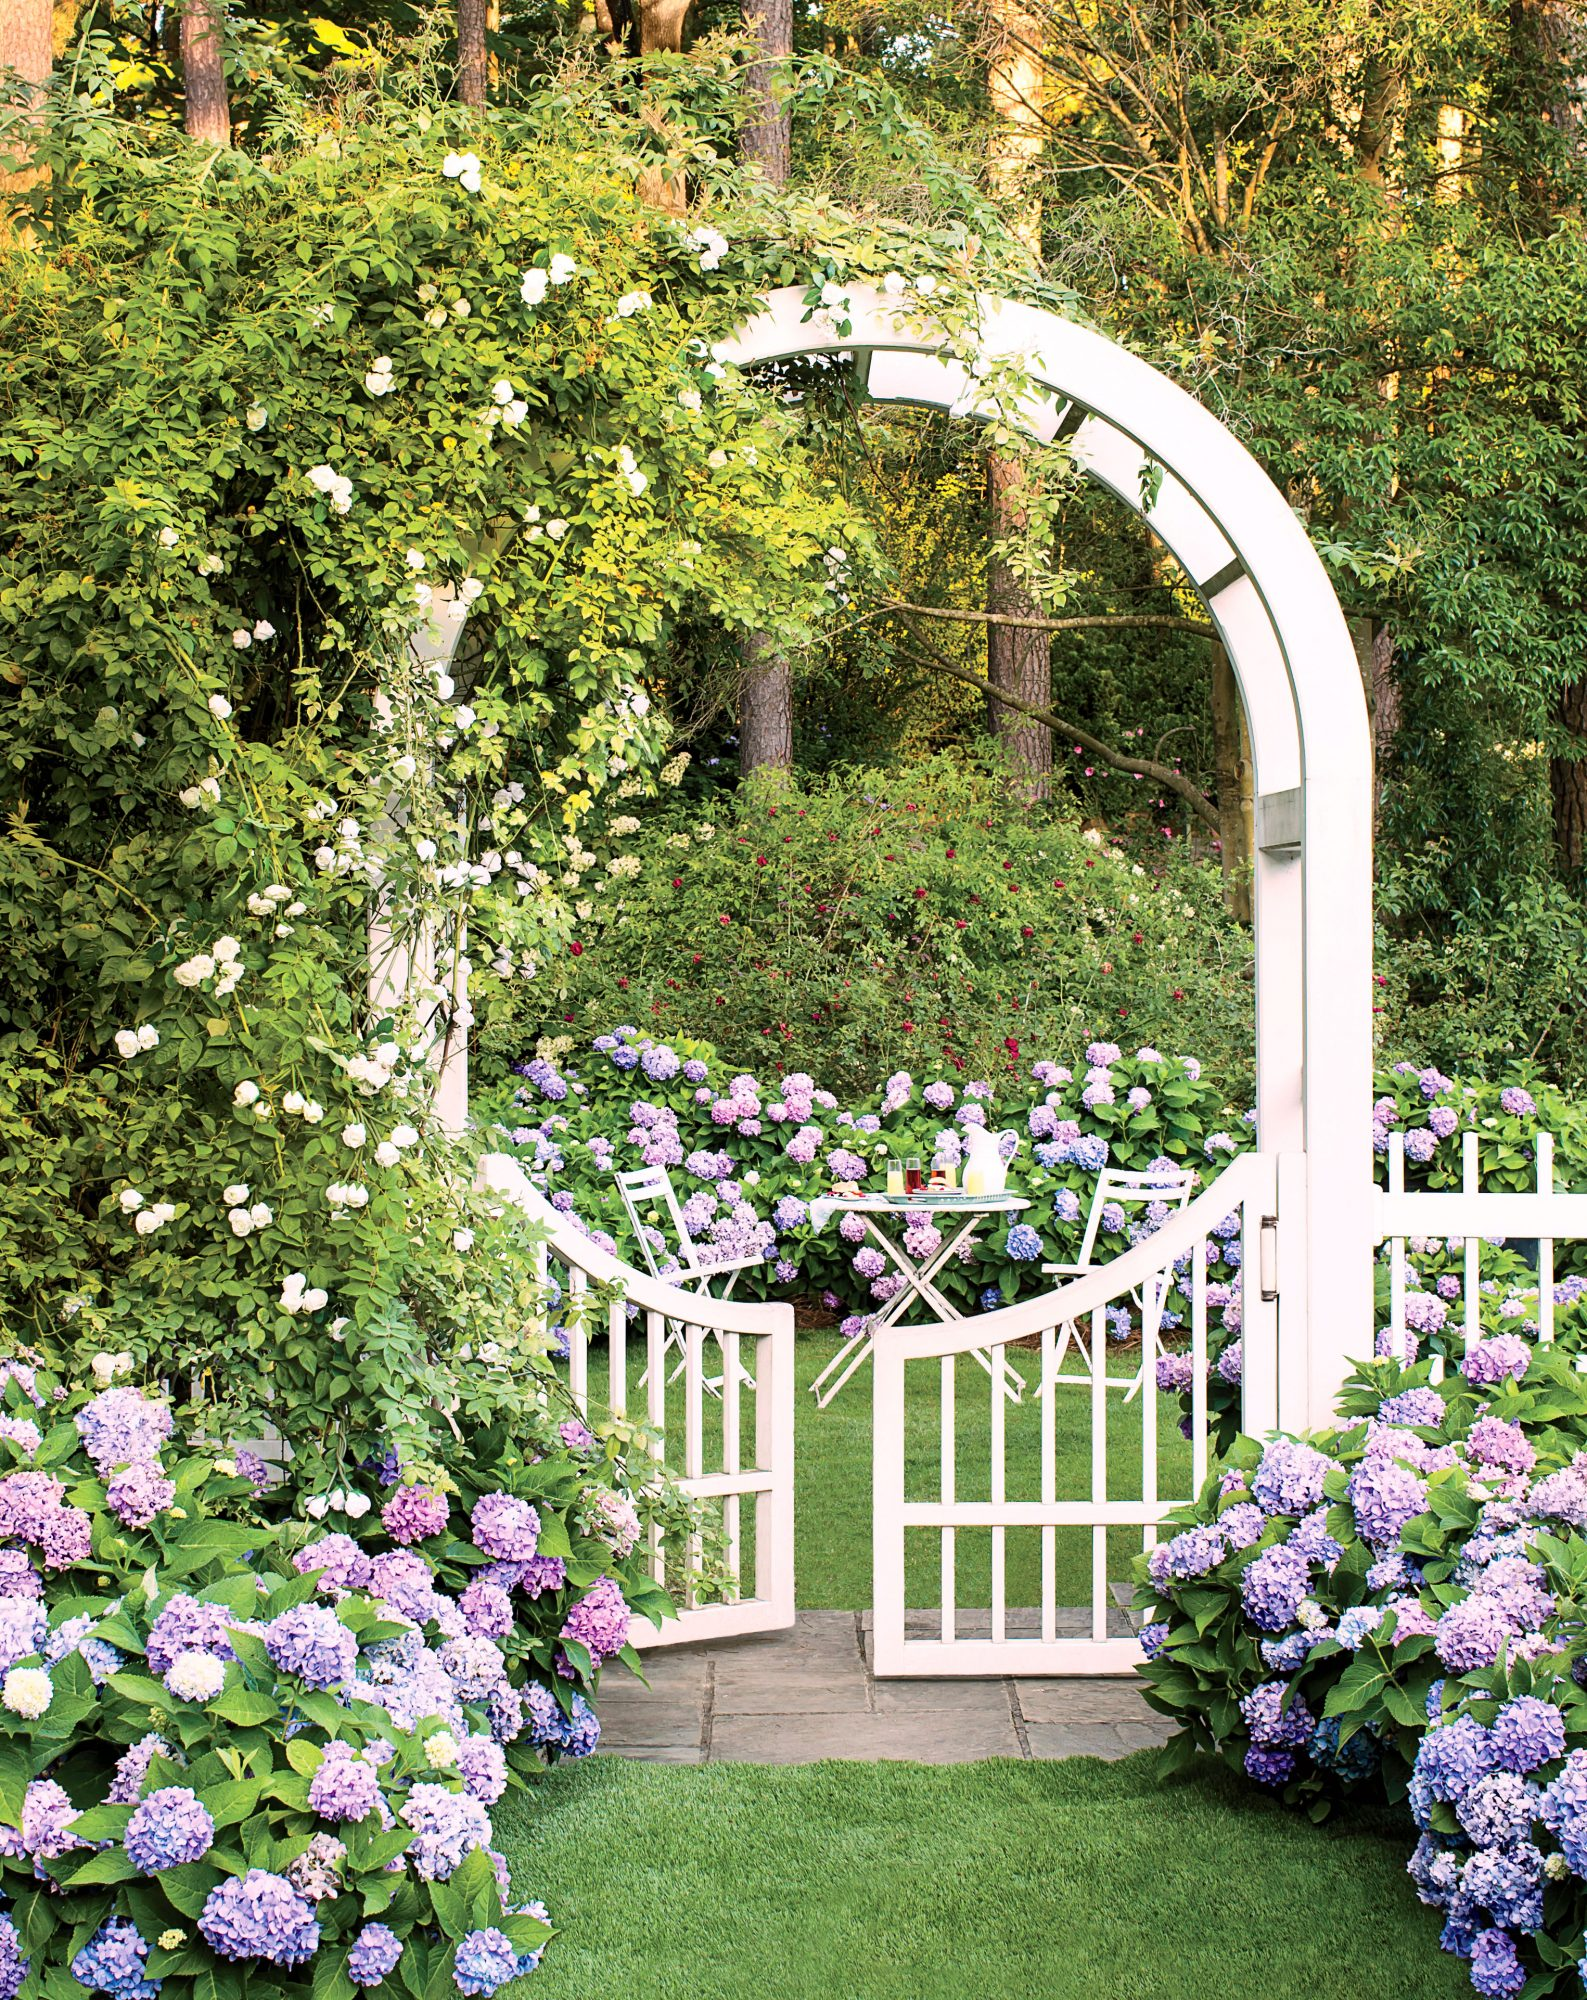 Garden with Arched pergola gate and hydrangea bushes